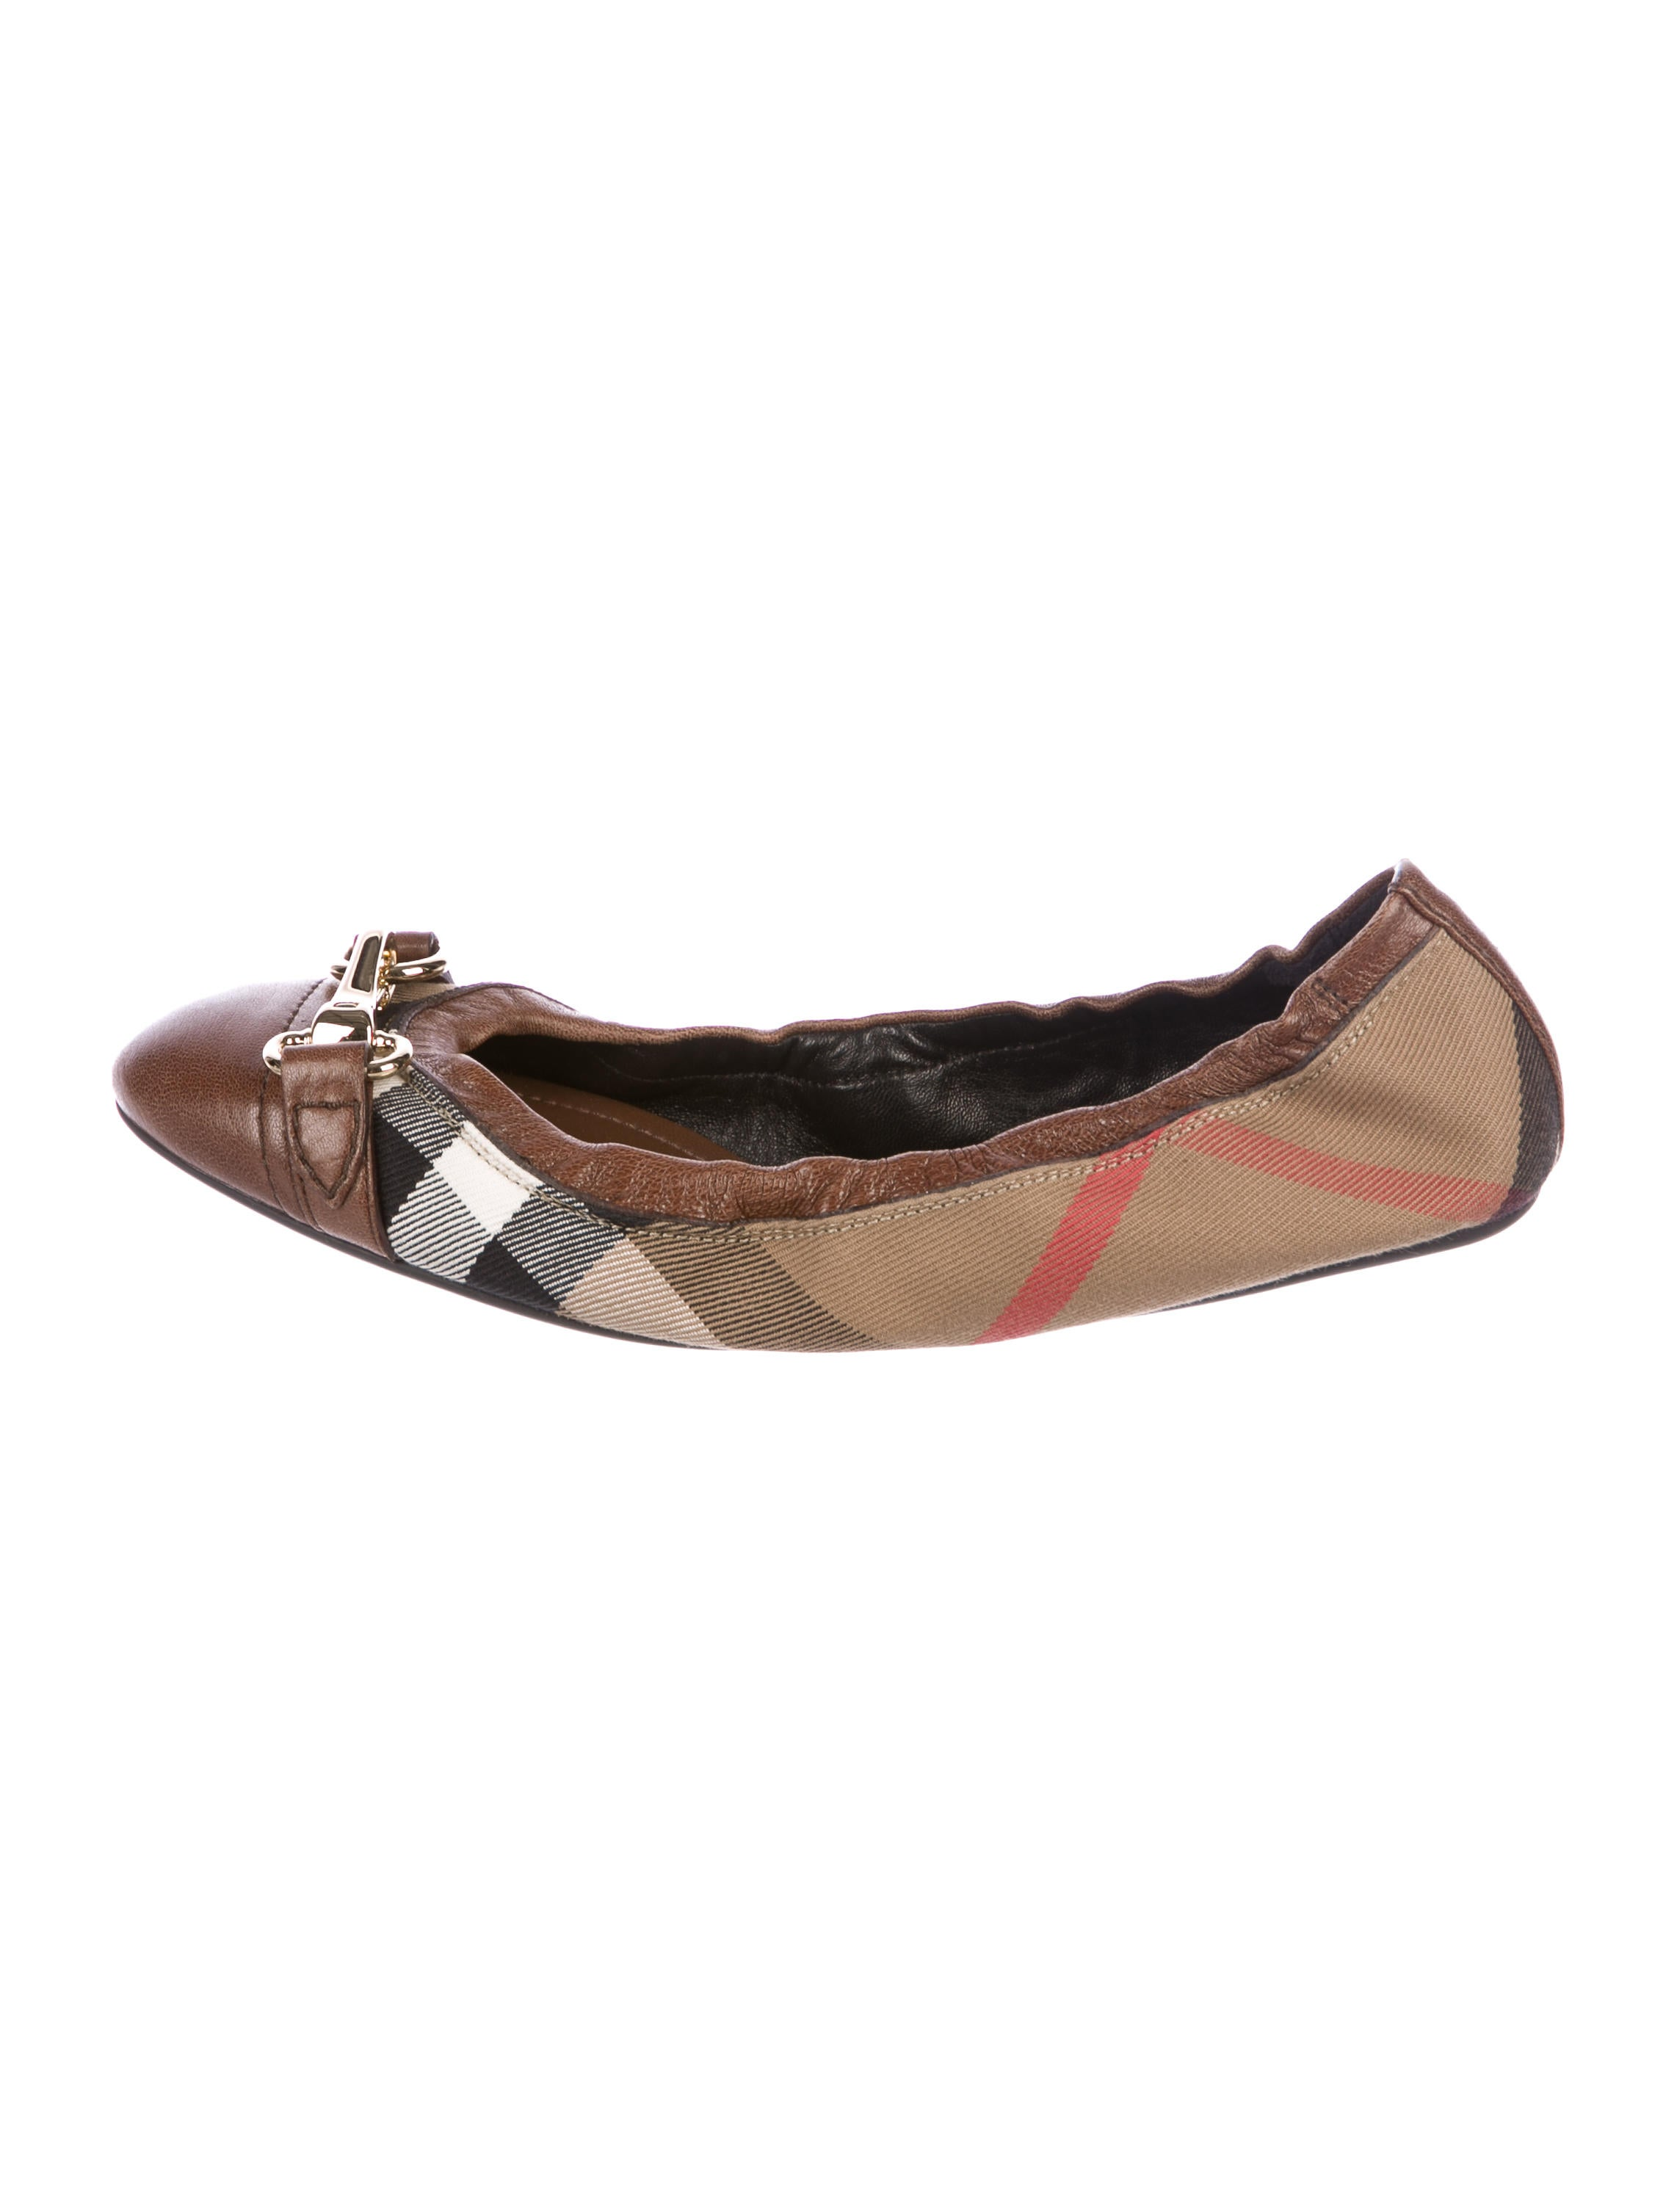 cheapest price Burberry Heritage House Check Shipley Flats discount amazon clearance for cheap explore sale online cheap online store Manchester FUs5wuX